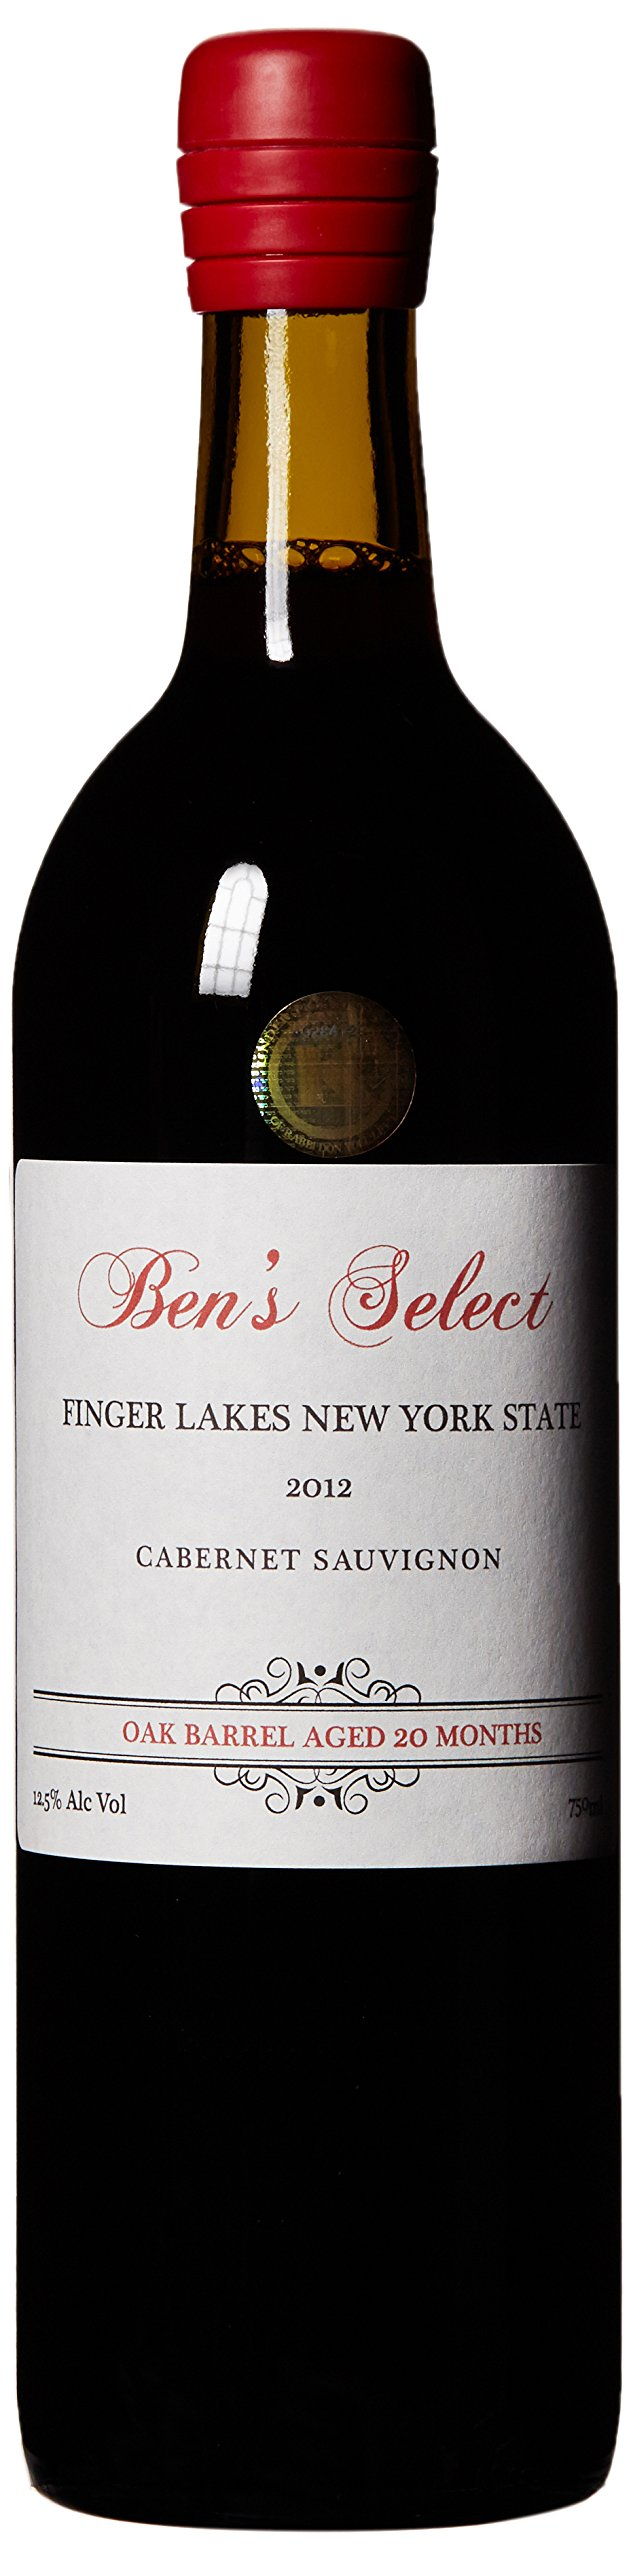 "2012 Ben Ish Winery ""Ben's Select"" Finger Lakes New York State Cabernet Sauvignon with personalized label 750 mL"